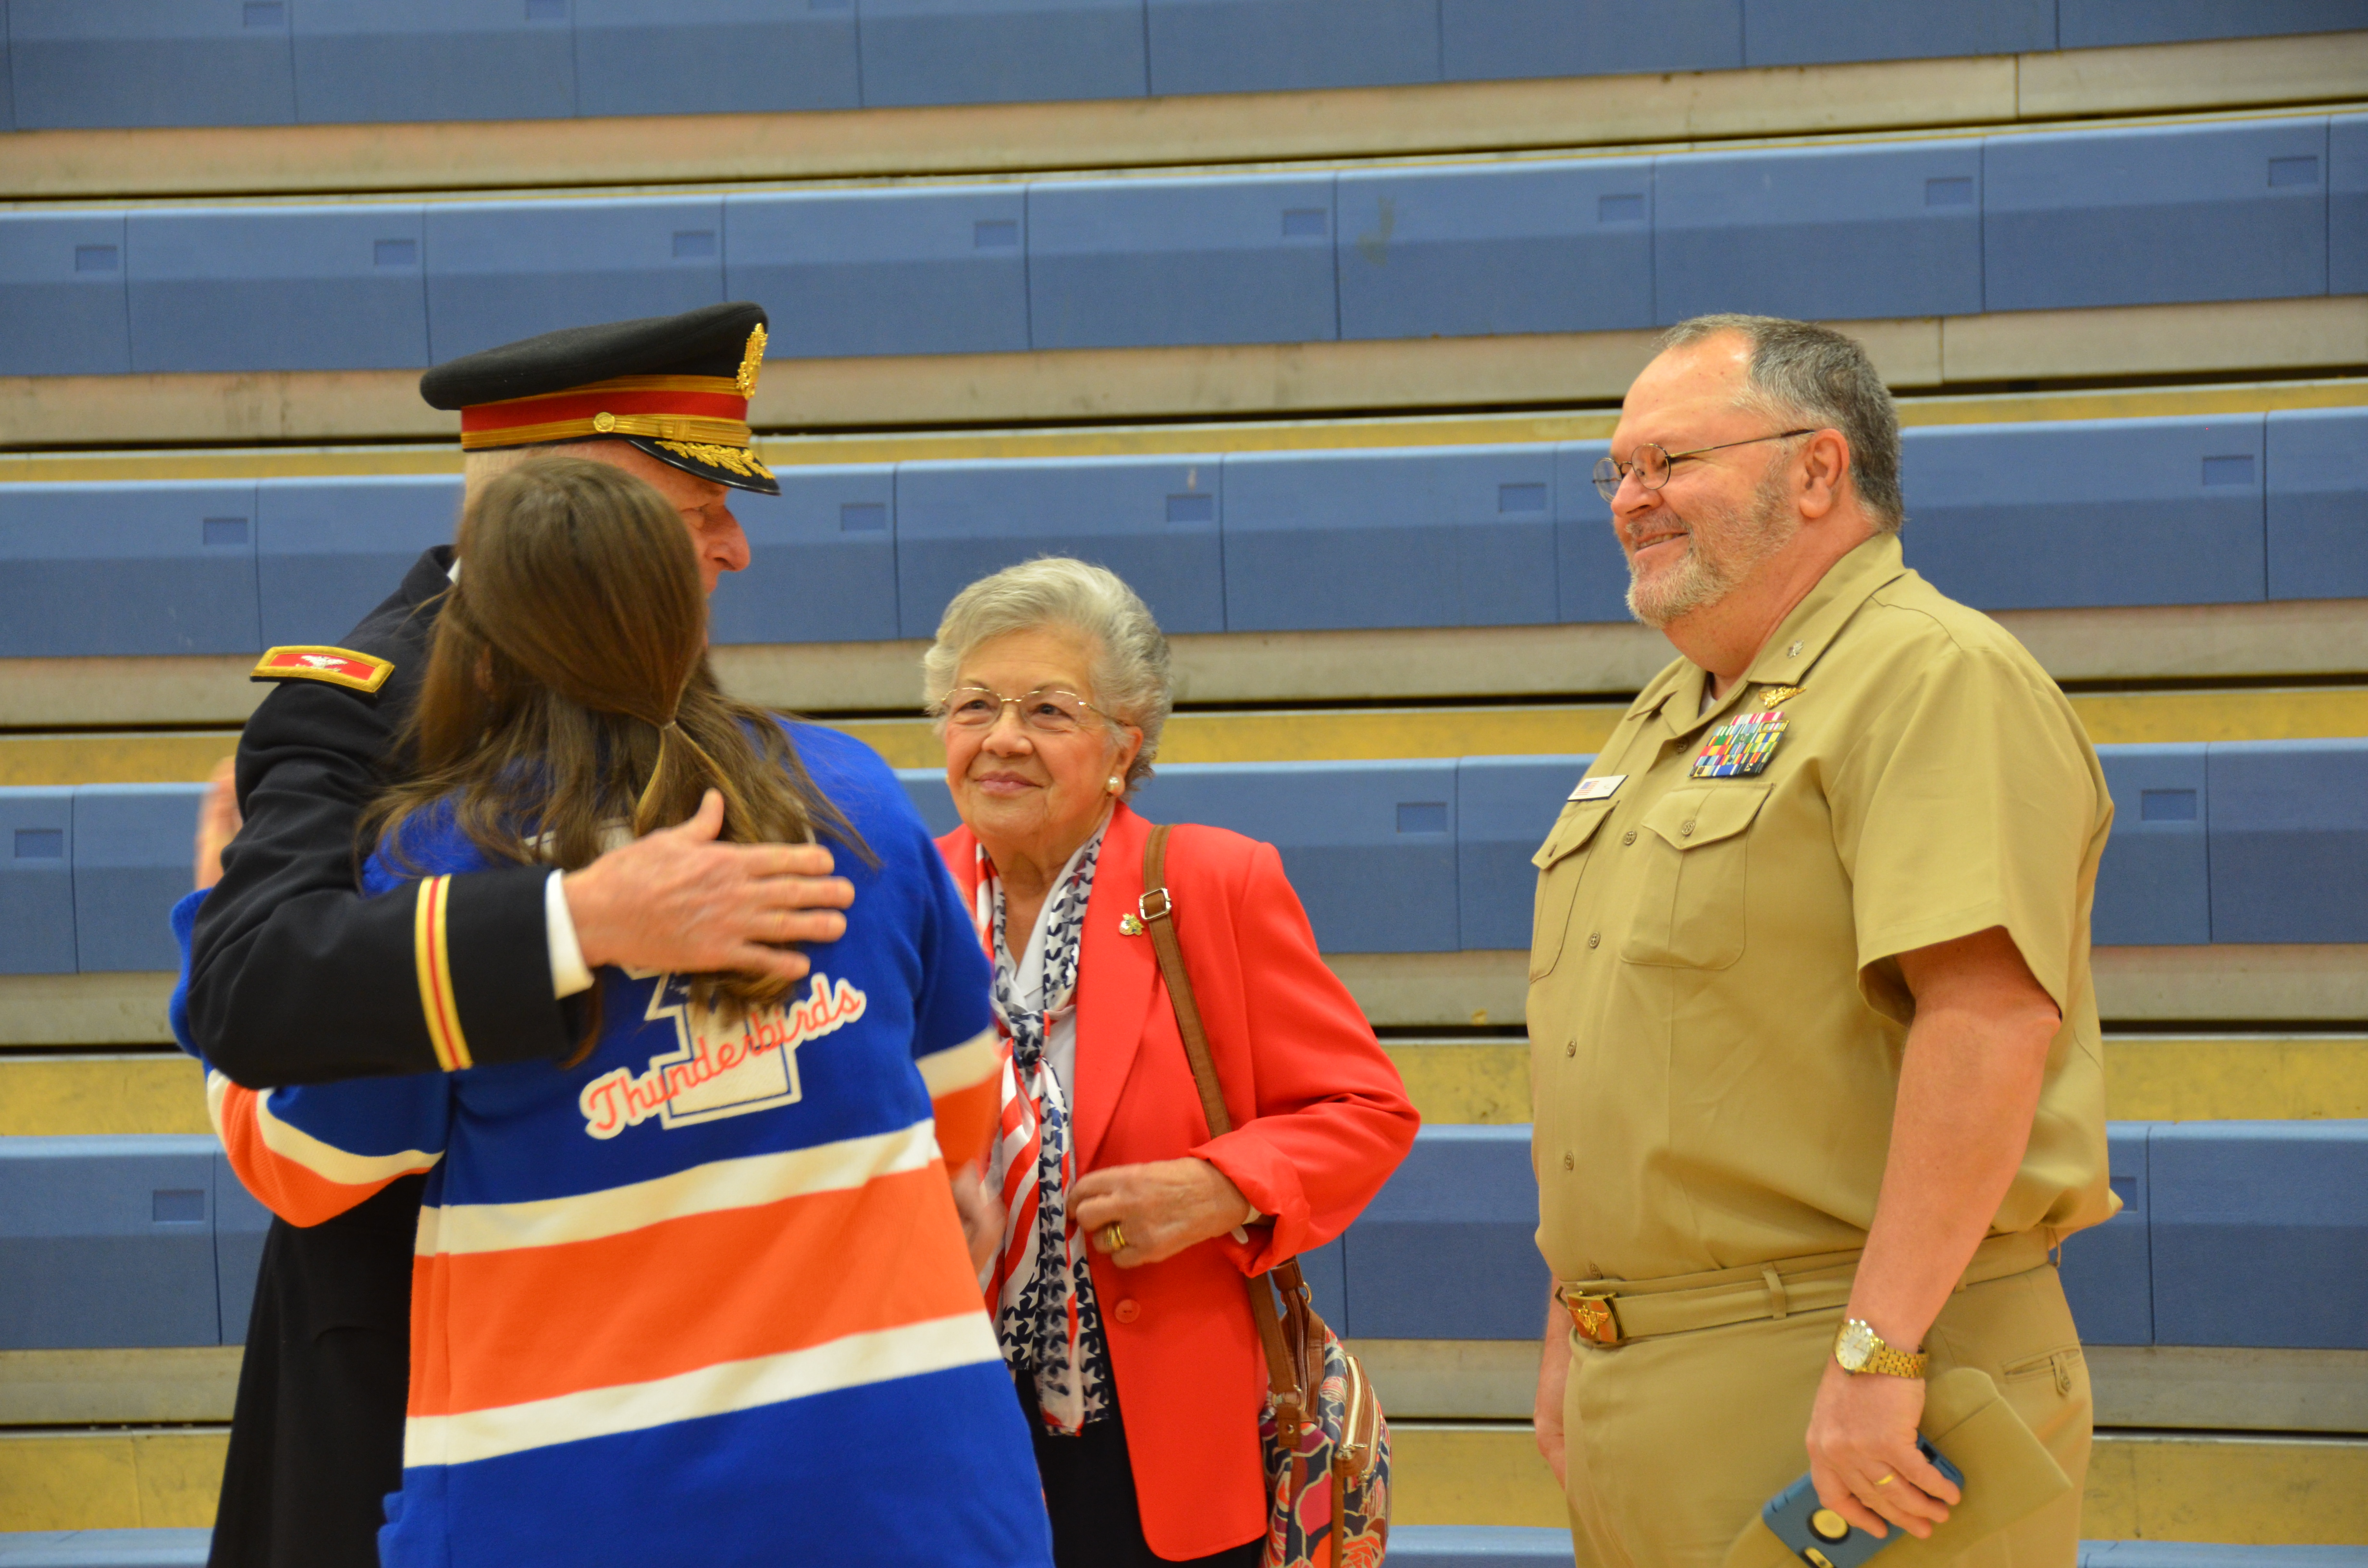 Veterans' Day Assembly 10th Anniversary